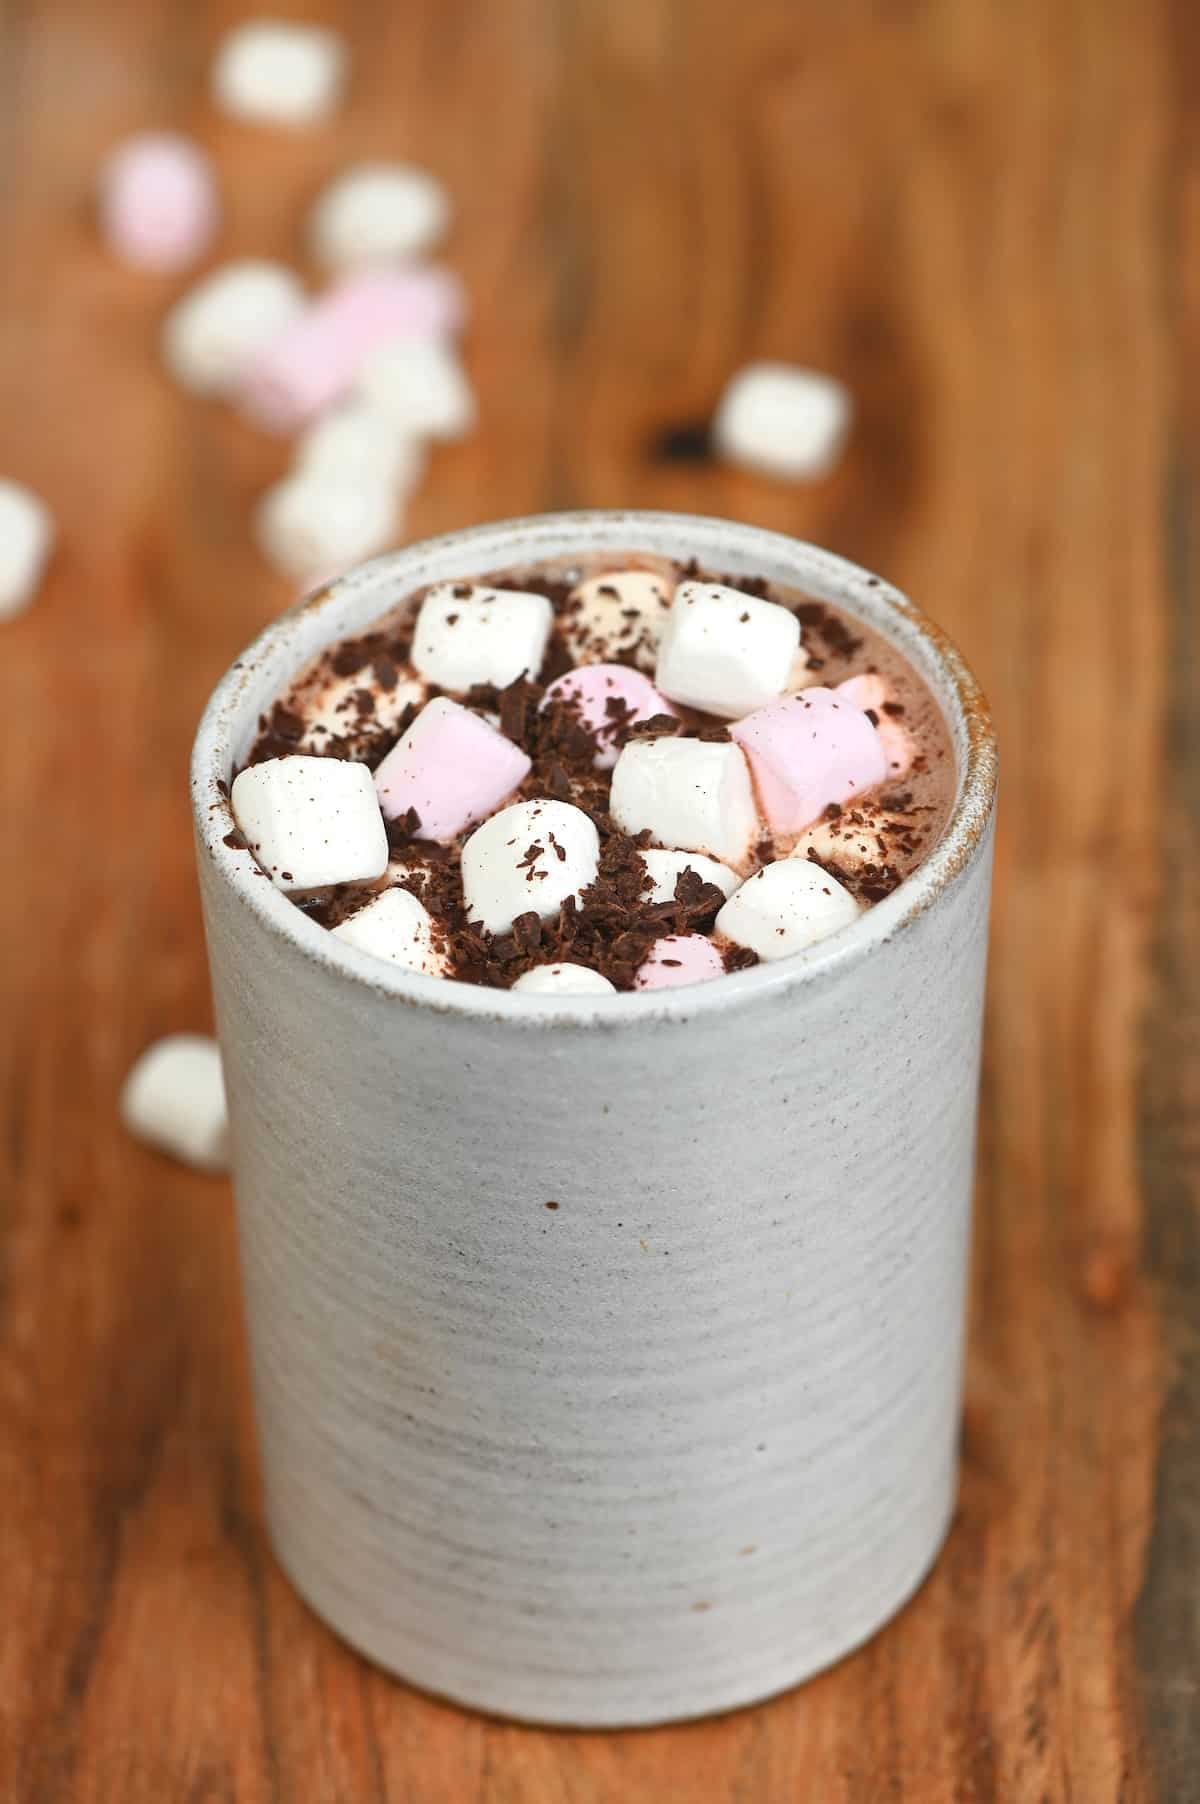 Hot chocolate in a cup topped with marshmallows and chocolate shavings